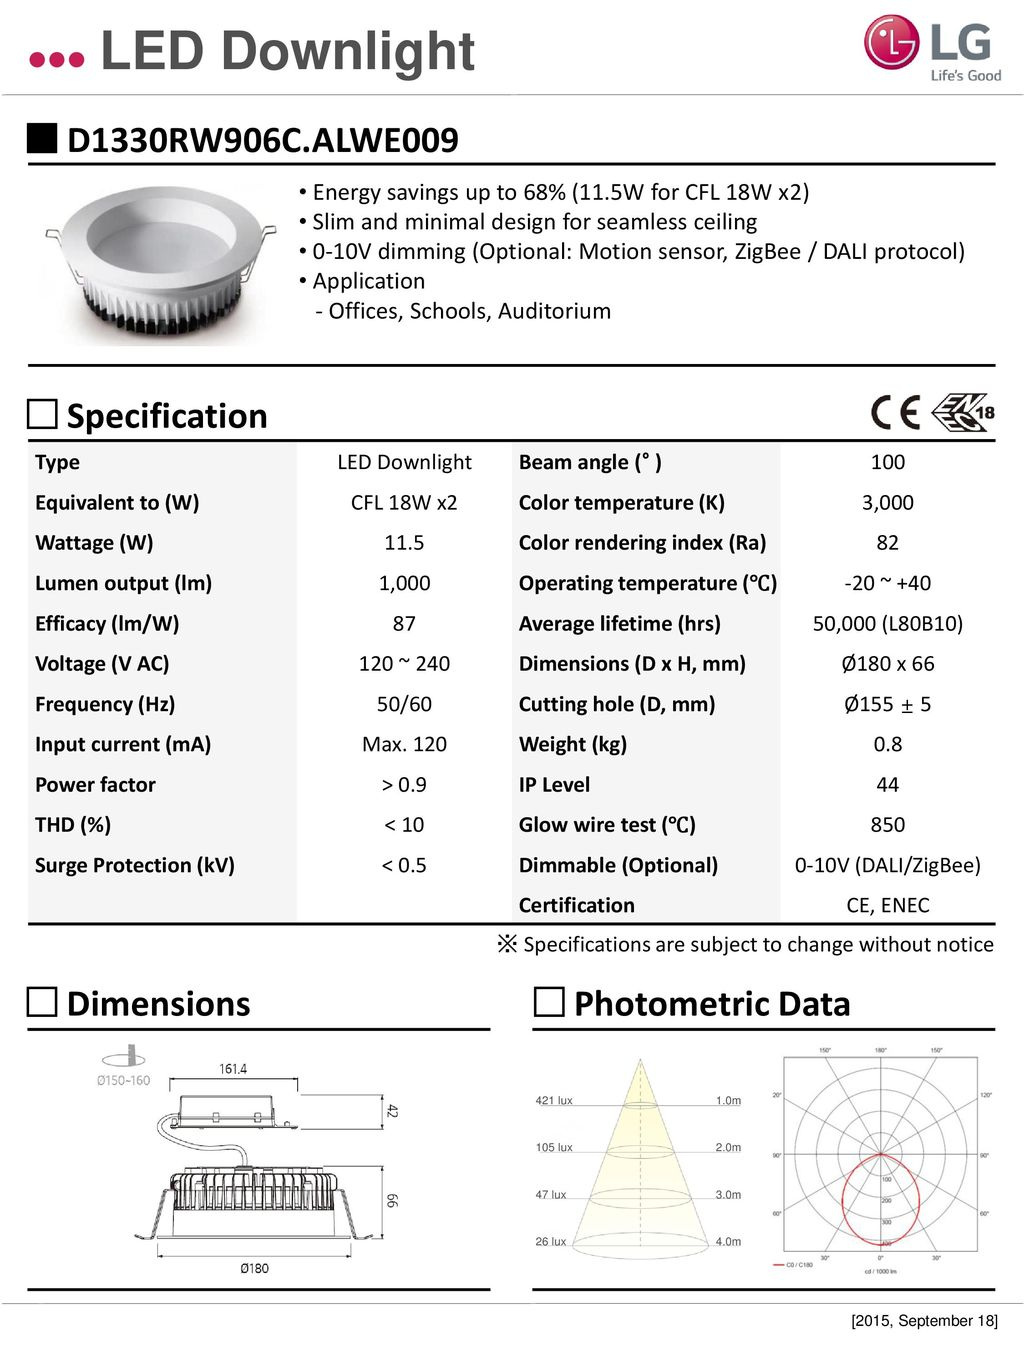 Led Downlight D1330rw906calwe009 Specification Dimensions 0 10v Dimming Wiring Diagram